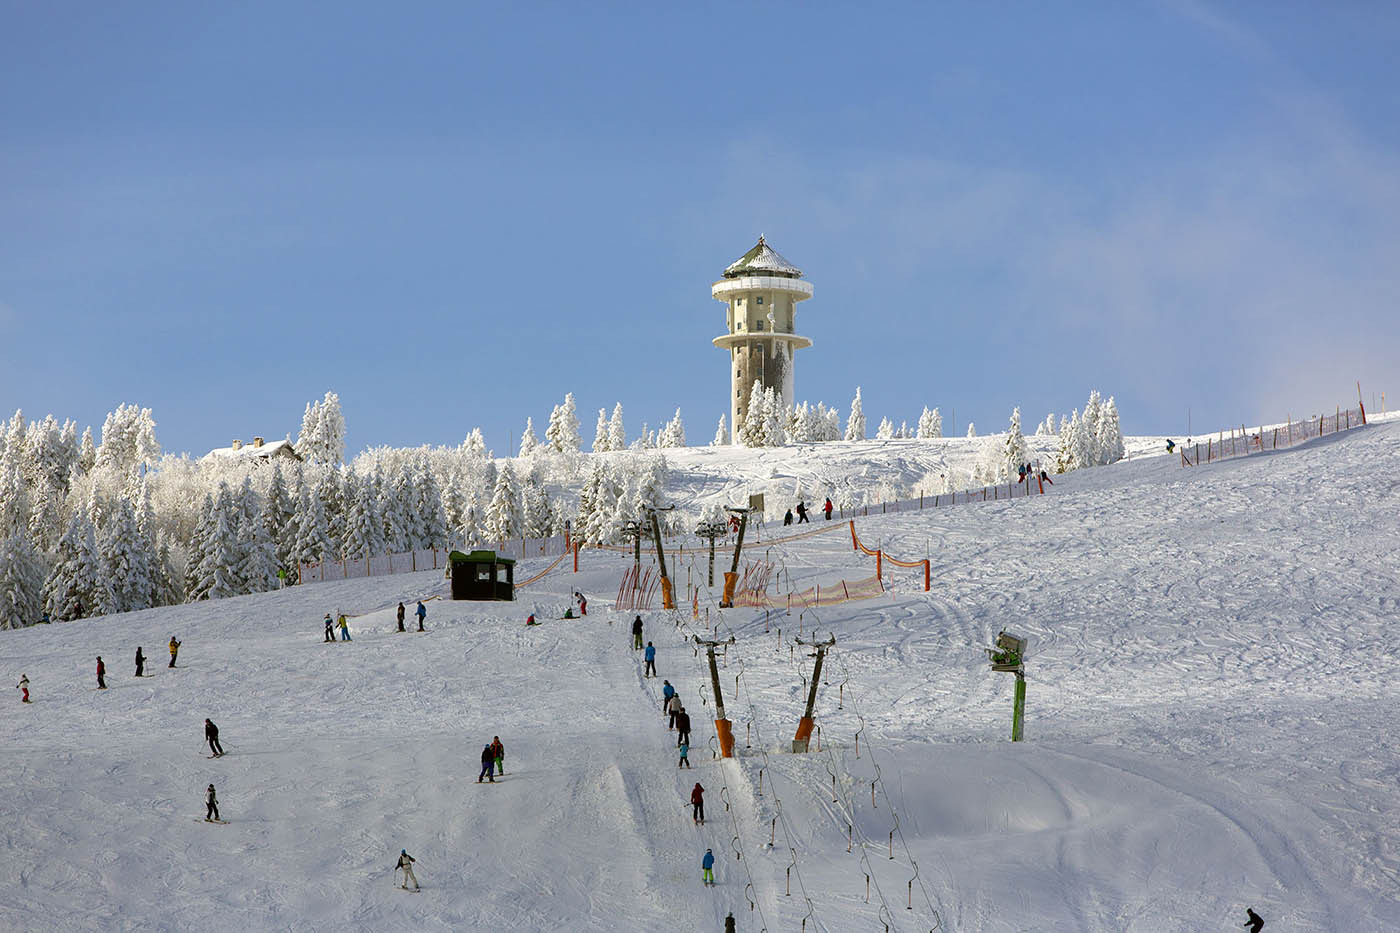 Optimale sneeuwcondities op de Feldberg, januari 2013